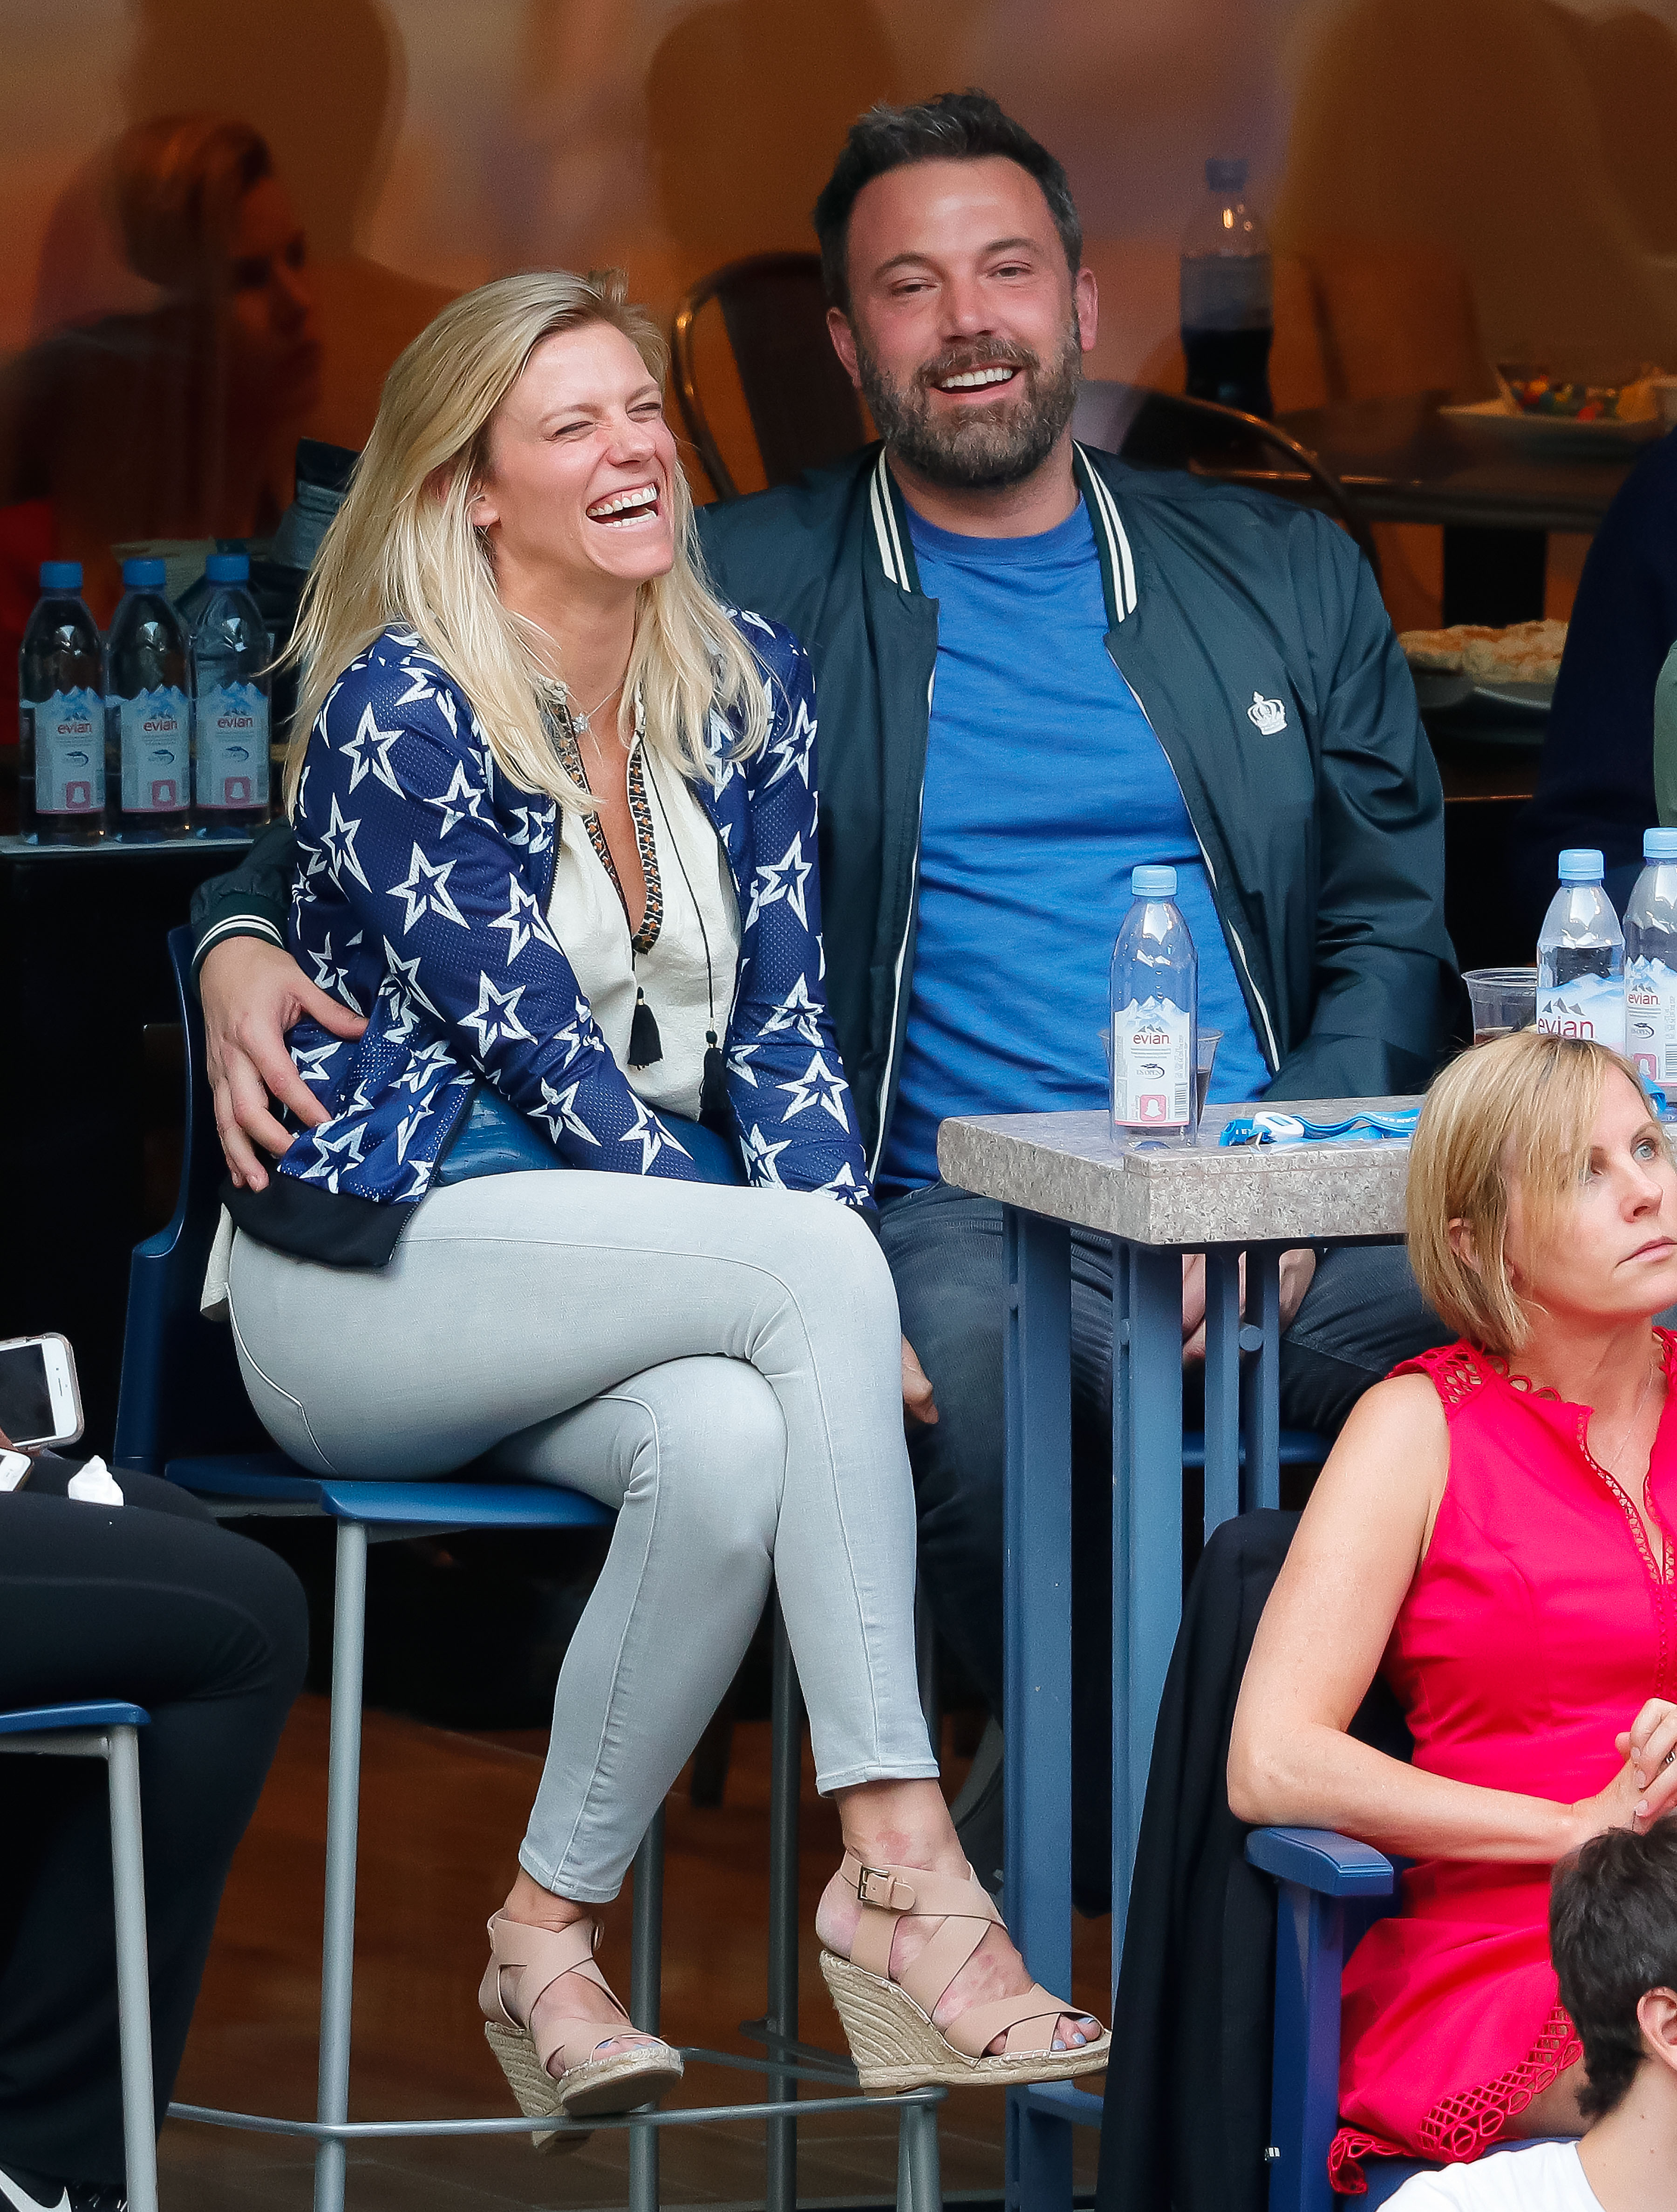 Ben Affleck and Lindsay Shookus look very much in love when watching the 2017 US Open Men's Championships Nadal vs. Anderson at Arthur Ashe Stadium in Flushing, New York. <P> Pictured: Ben Affleck, Lindsay Shookus <B>Ref: SPL1574905  100917  </B><BR/> Picture by: XactpiX/Splash News<BR/> </P><P> <B>Splash News and Pictures</B><BR/> Los Angeles:310-821-2666<BR/> New York:212-619-2666<BR/> London:870-934-2666<BR/> <span id=